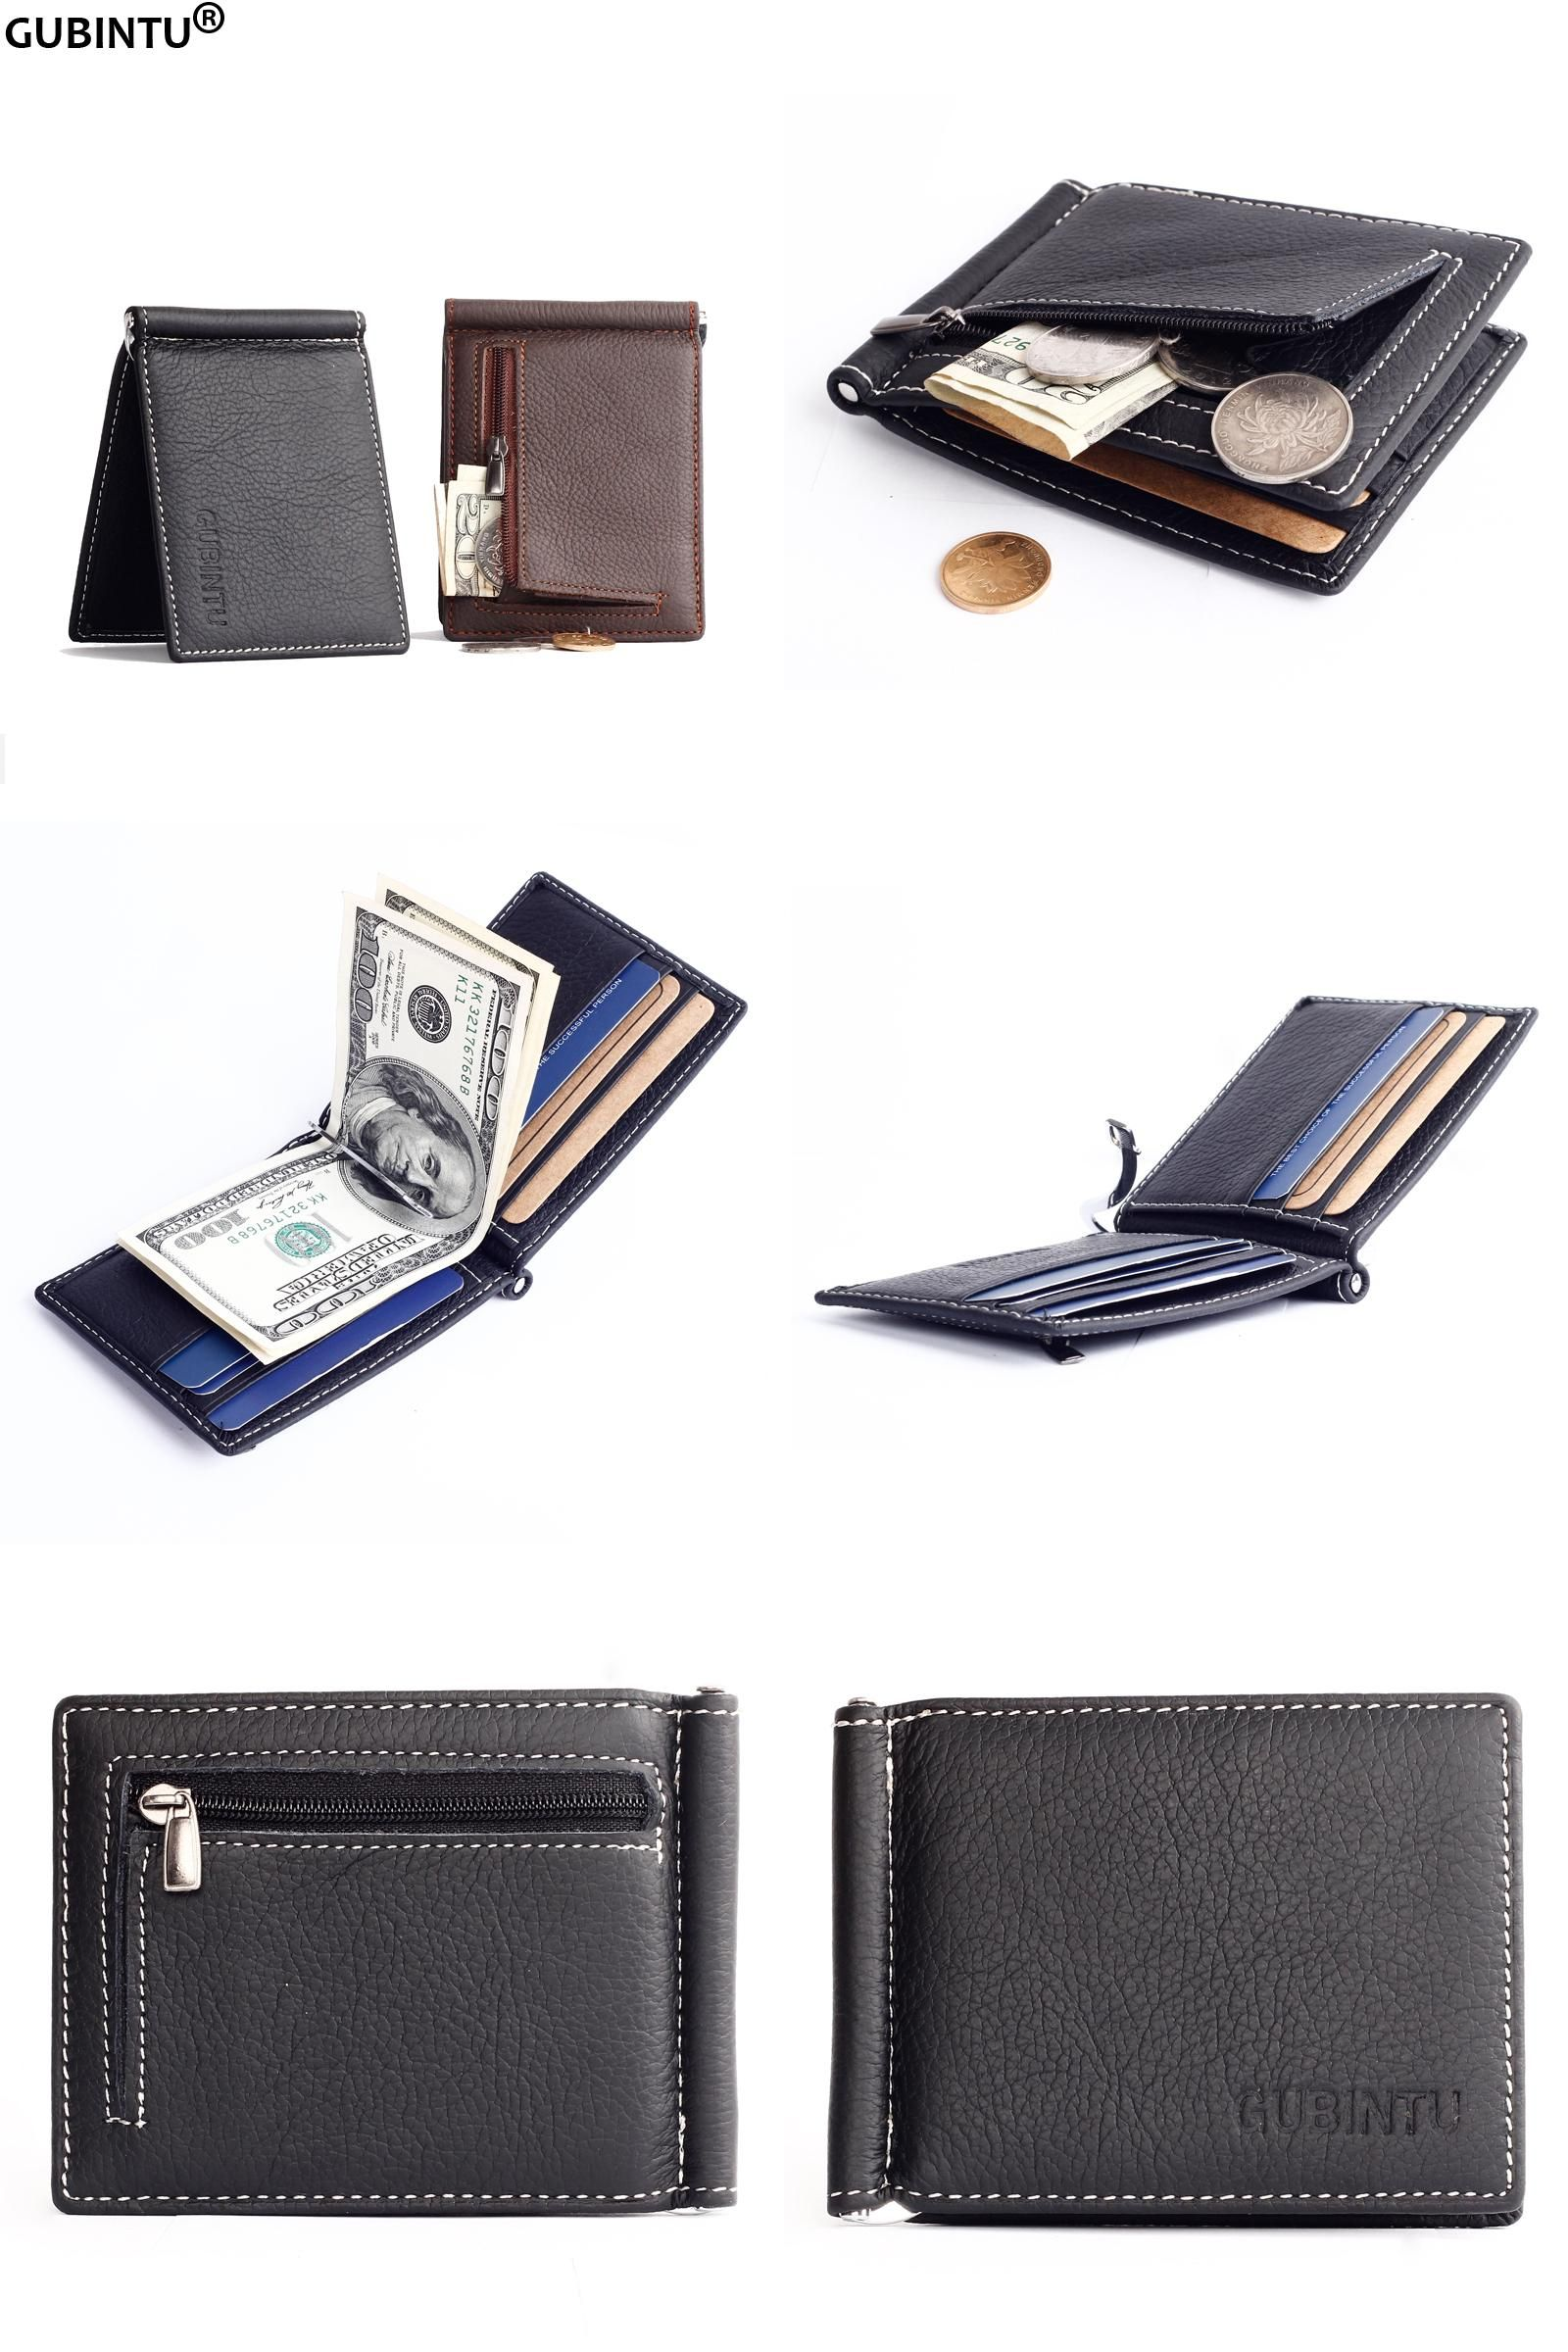 [Visit to Buy] New Men Genuine Leather Wallet Fashion Brand Slim Front Pocket Money Clip Wallet ZC6018 #Advertisement